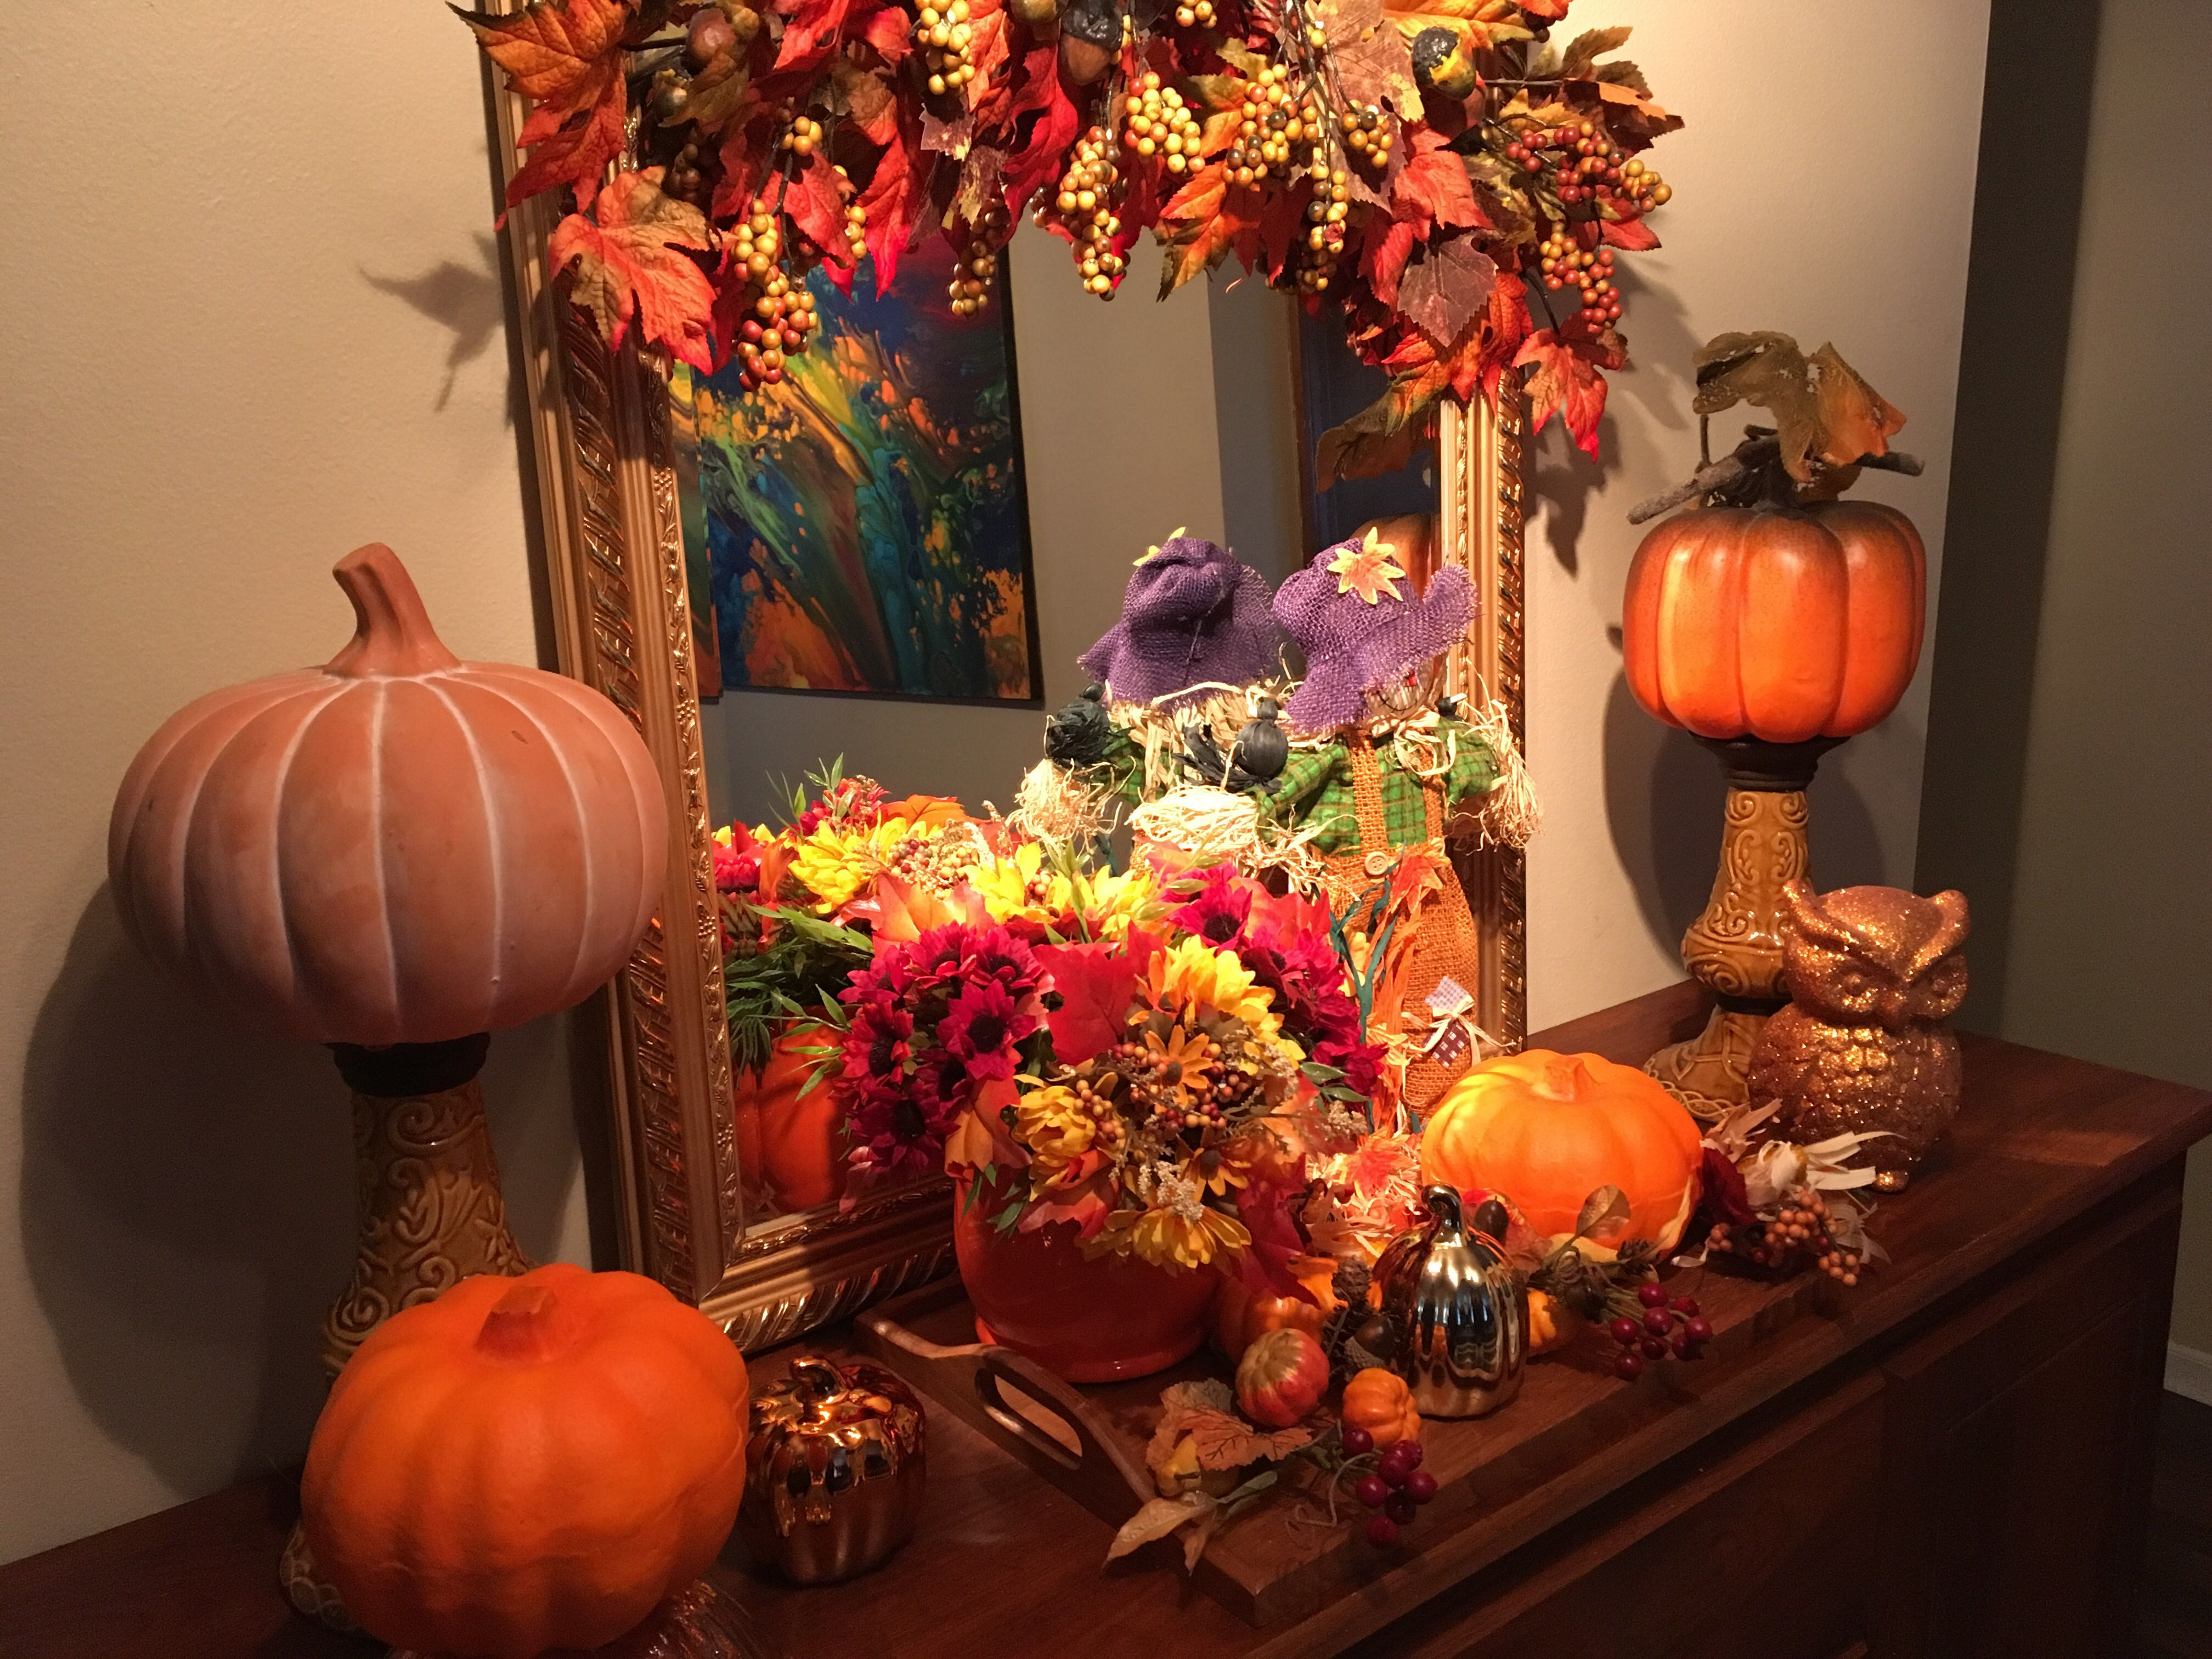 Ideas on how you can decorate your home indoors and outdoors for the Halloween holiday.